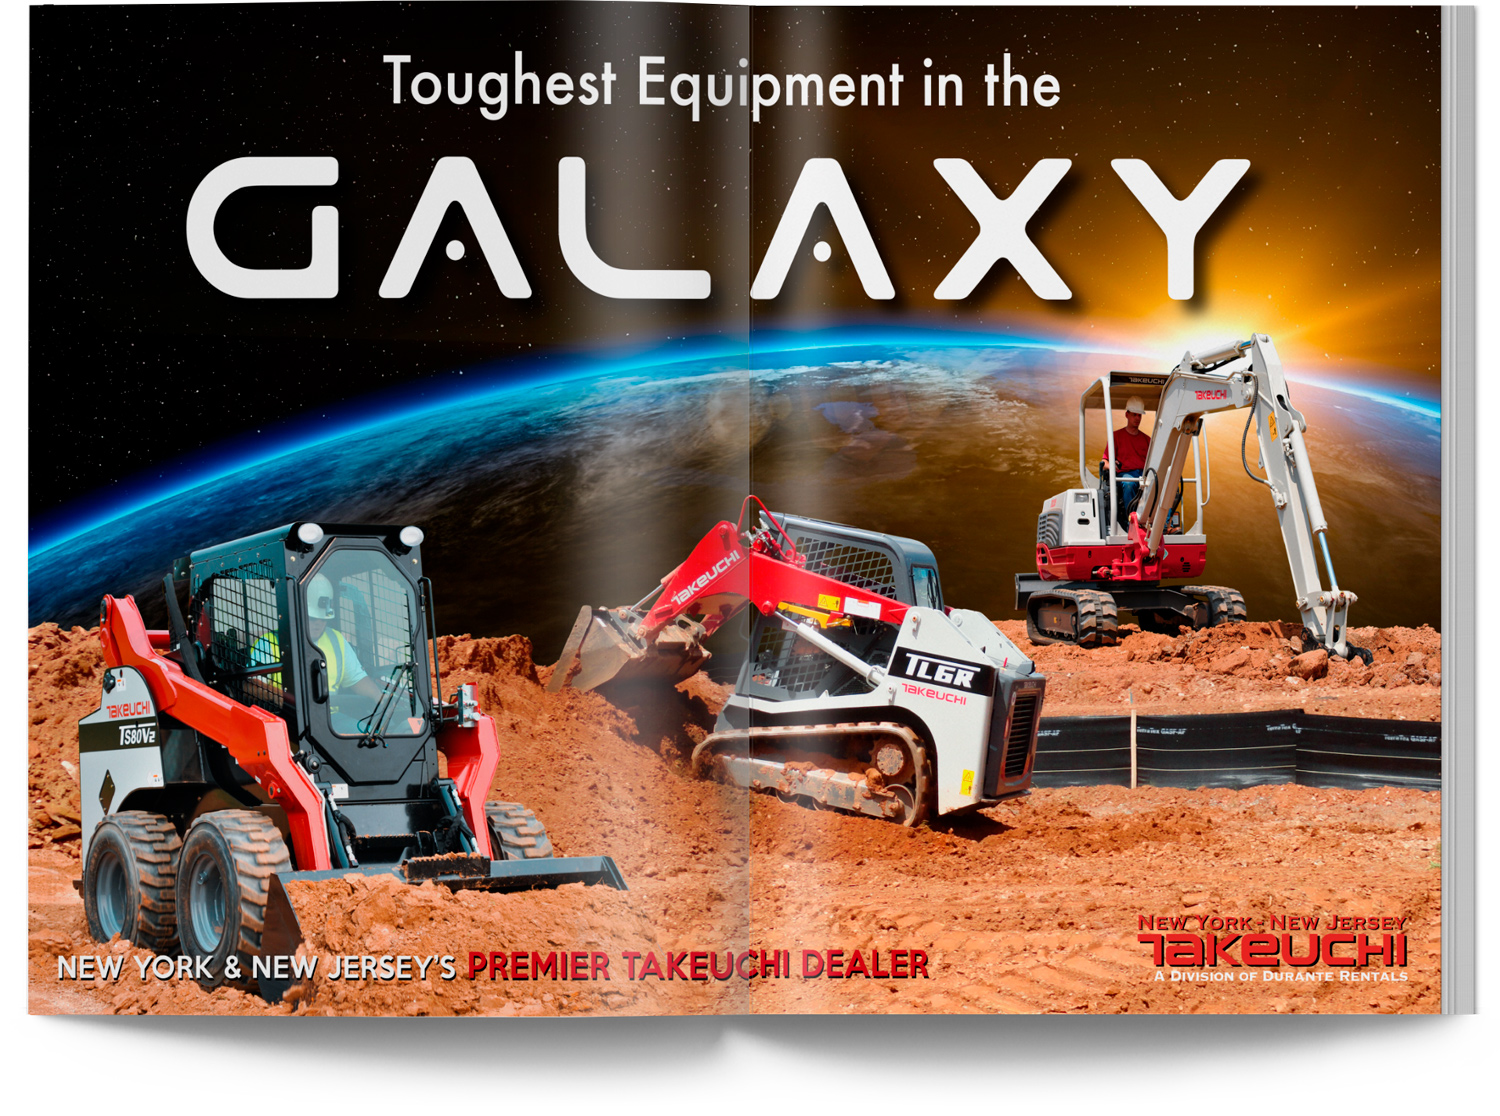 Takeuchi Equipment Toughest Equipment in the Galaxy in space